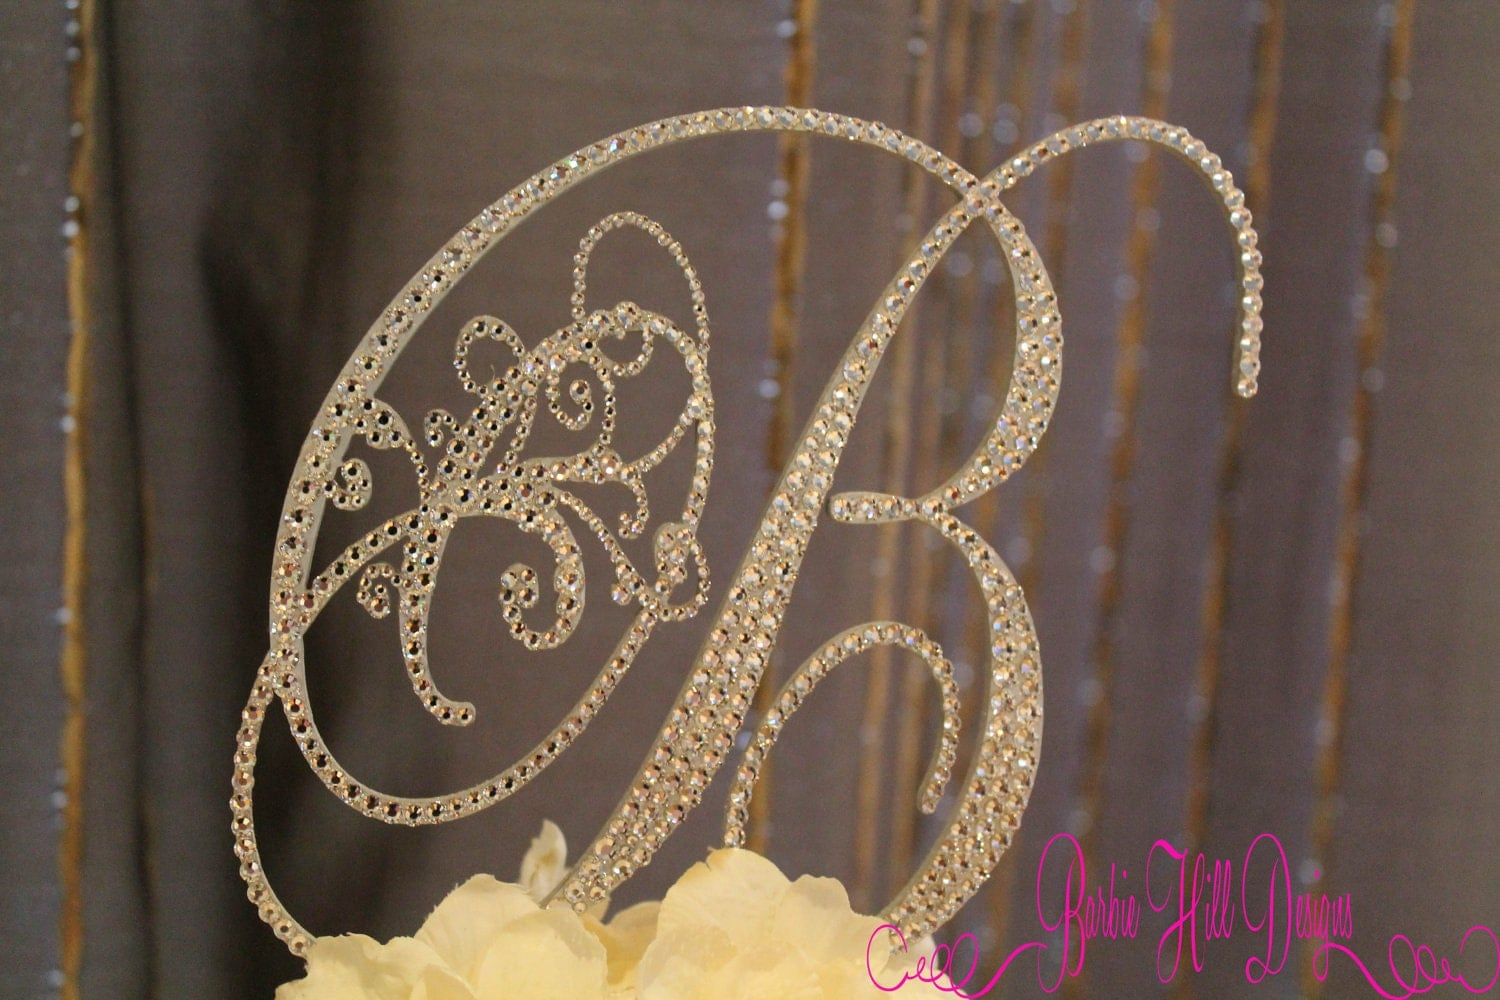 Cake Toppers Letters : 6 Crystal Monogram Cake Topper Letter B by BarbieHillDesigns